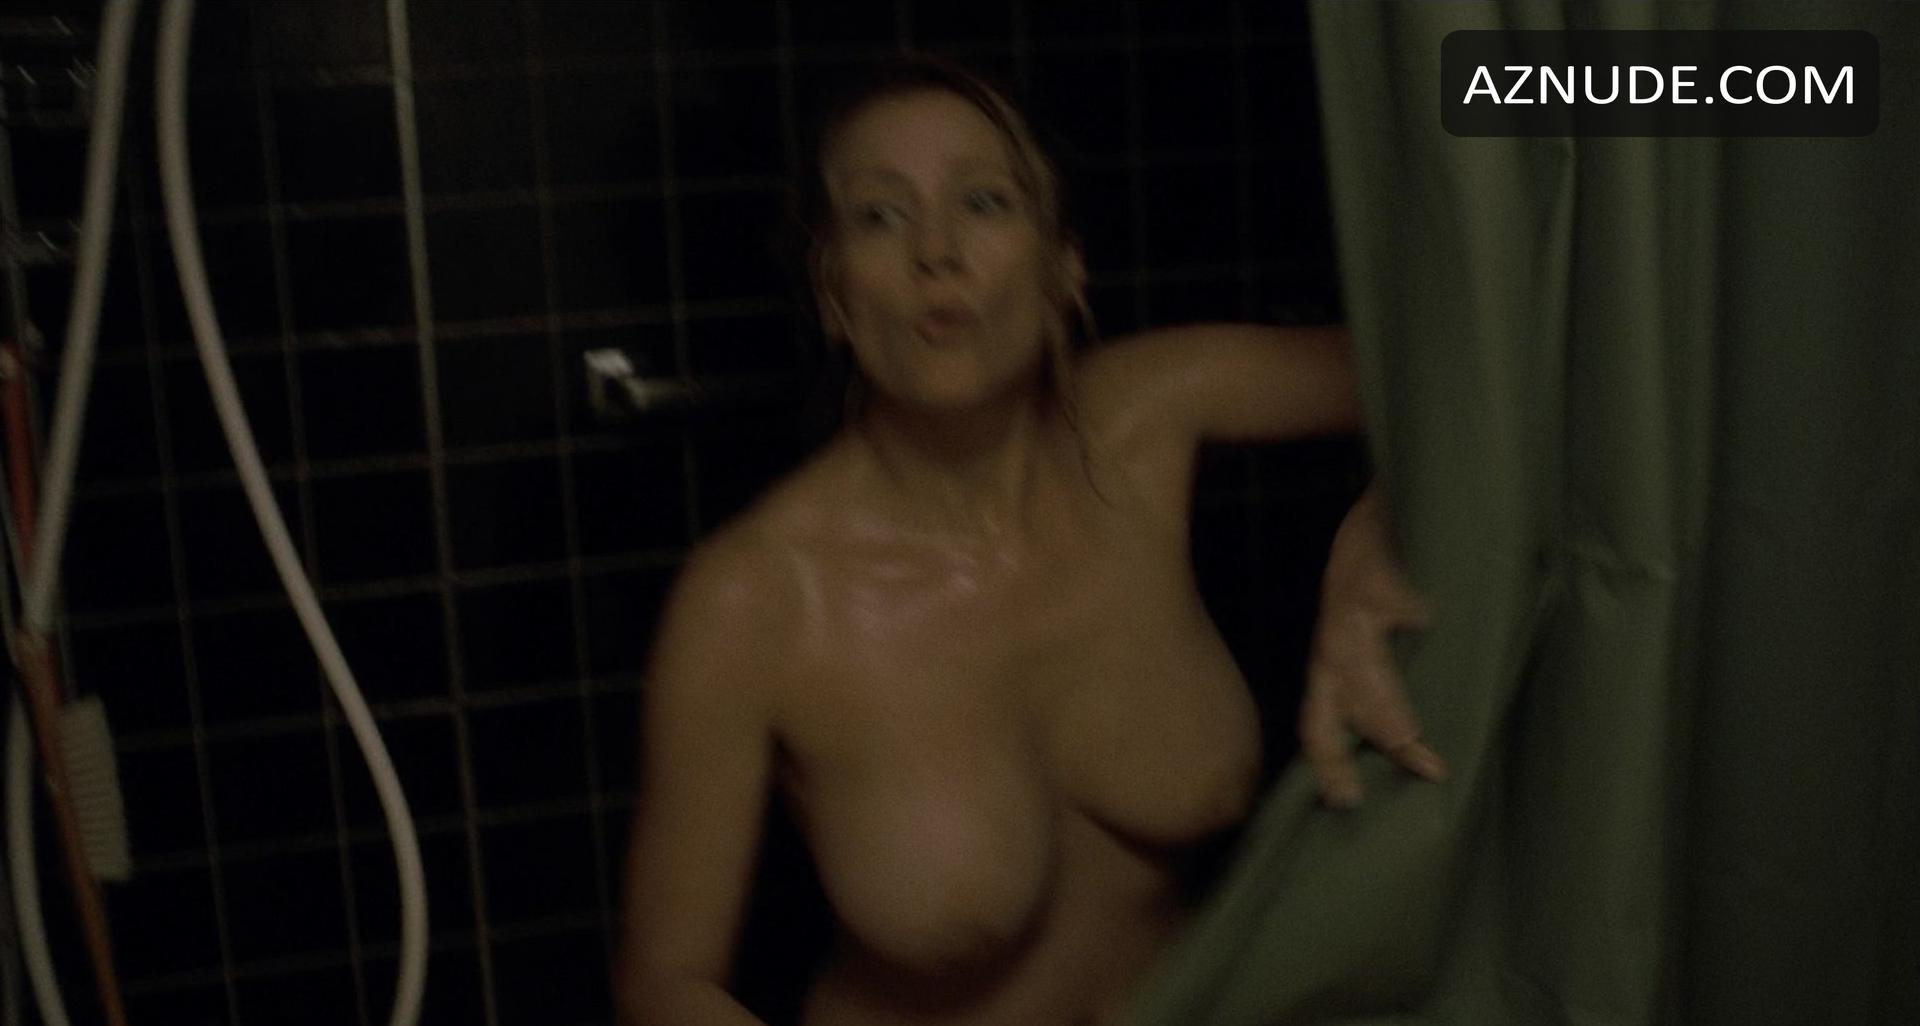 Bridget moynahan nude naked sex have